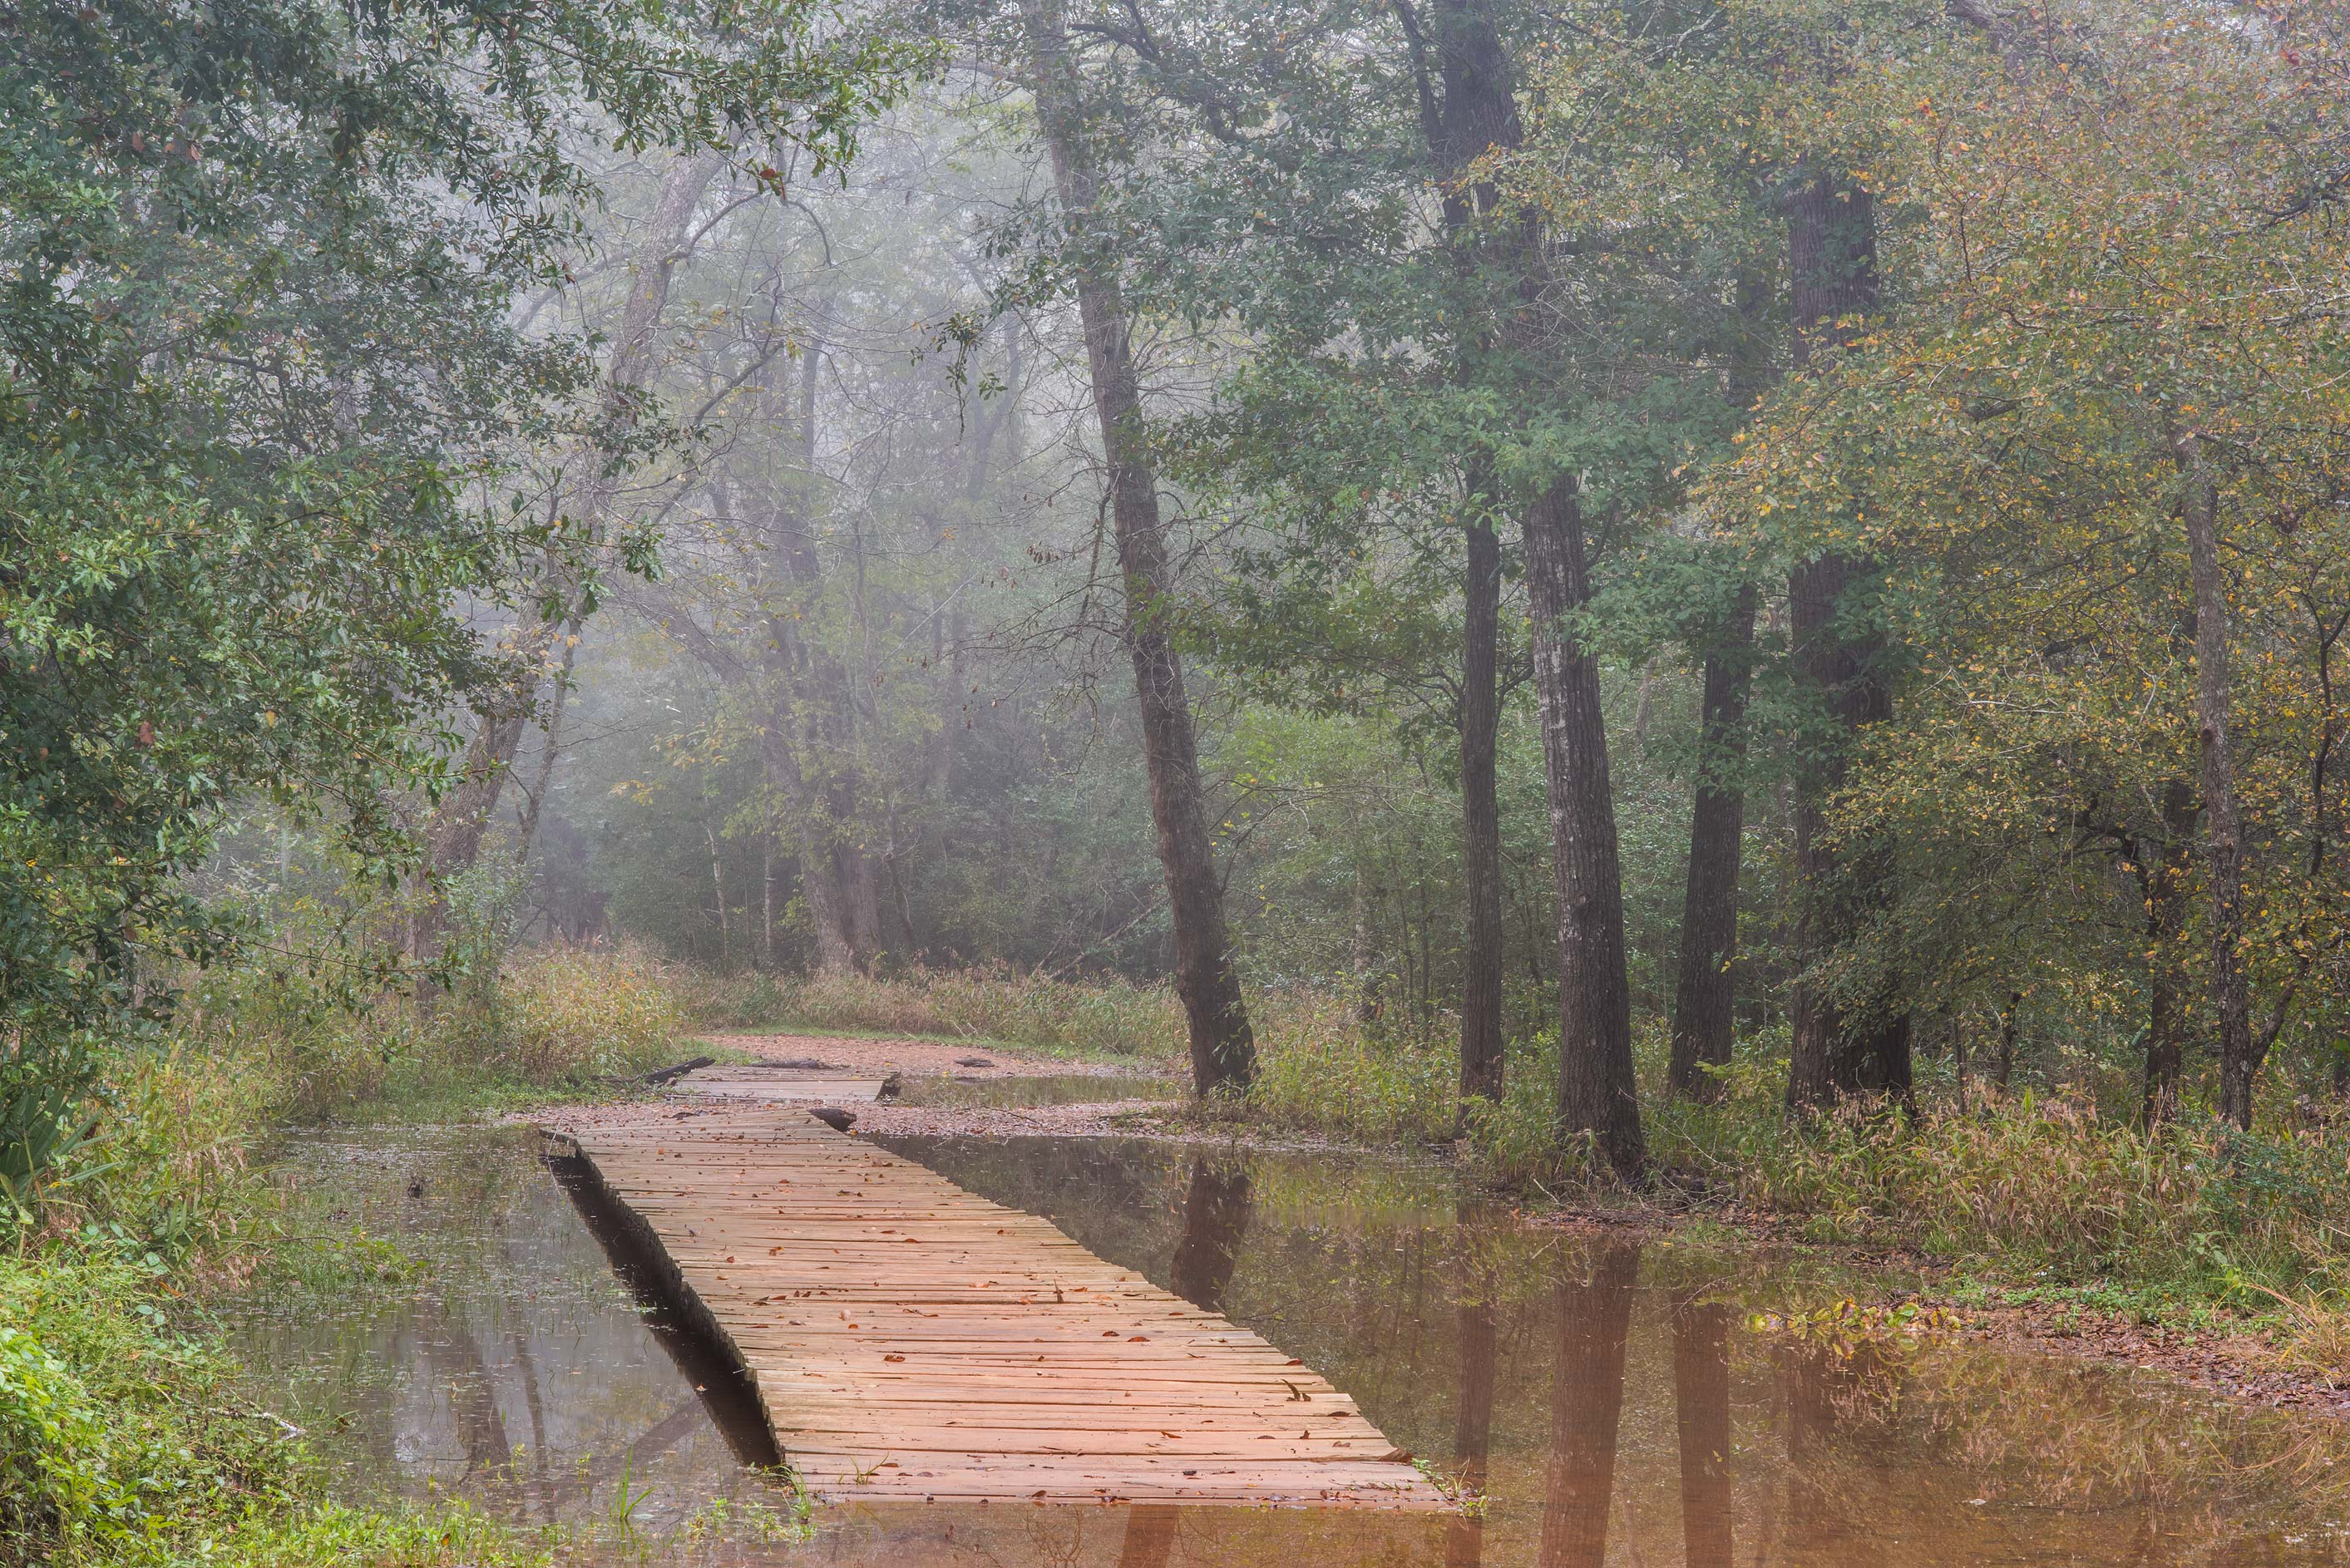 Boardwalk of Raccoon Run Trail in Lick Creek Park. College Station, Texas